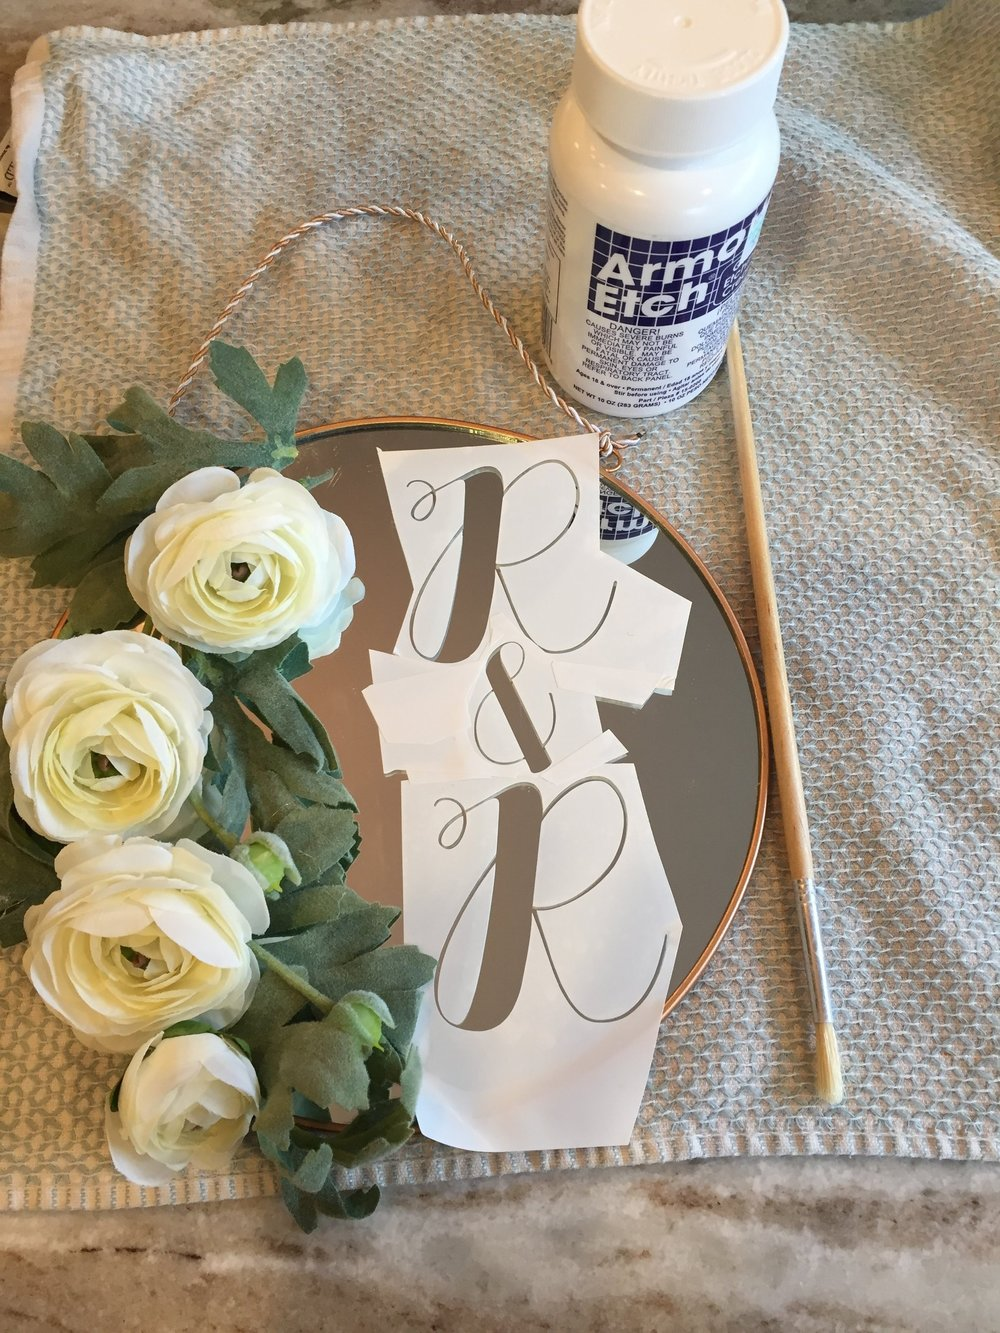 Supplies for custom etched floral mirror